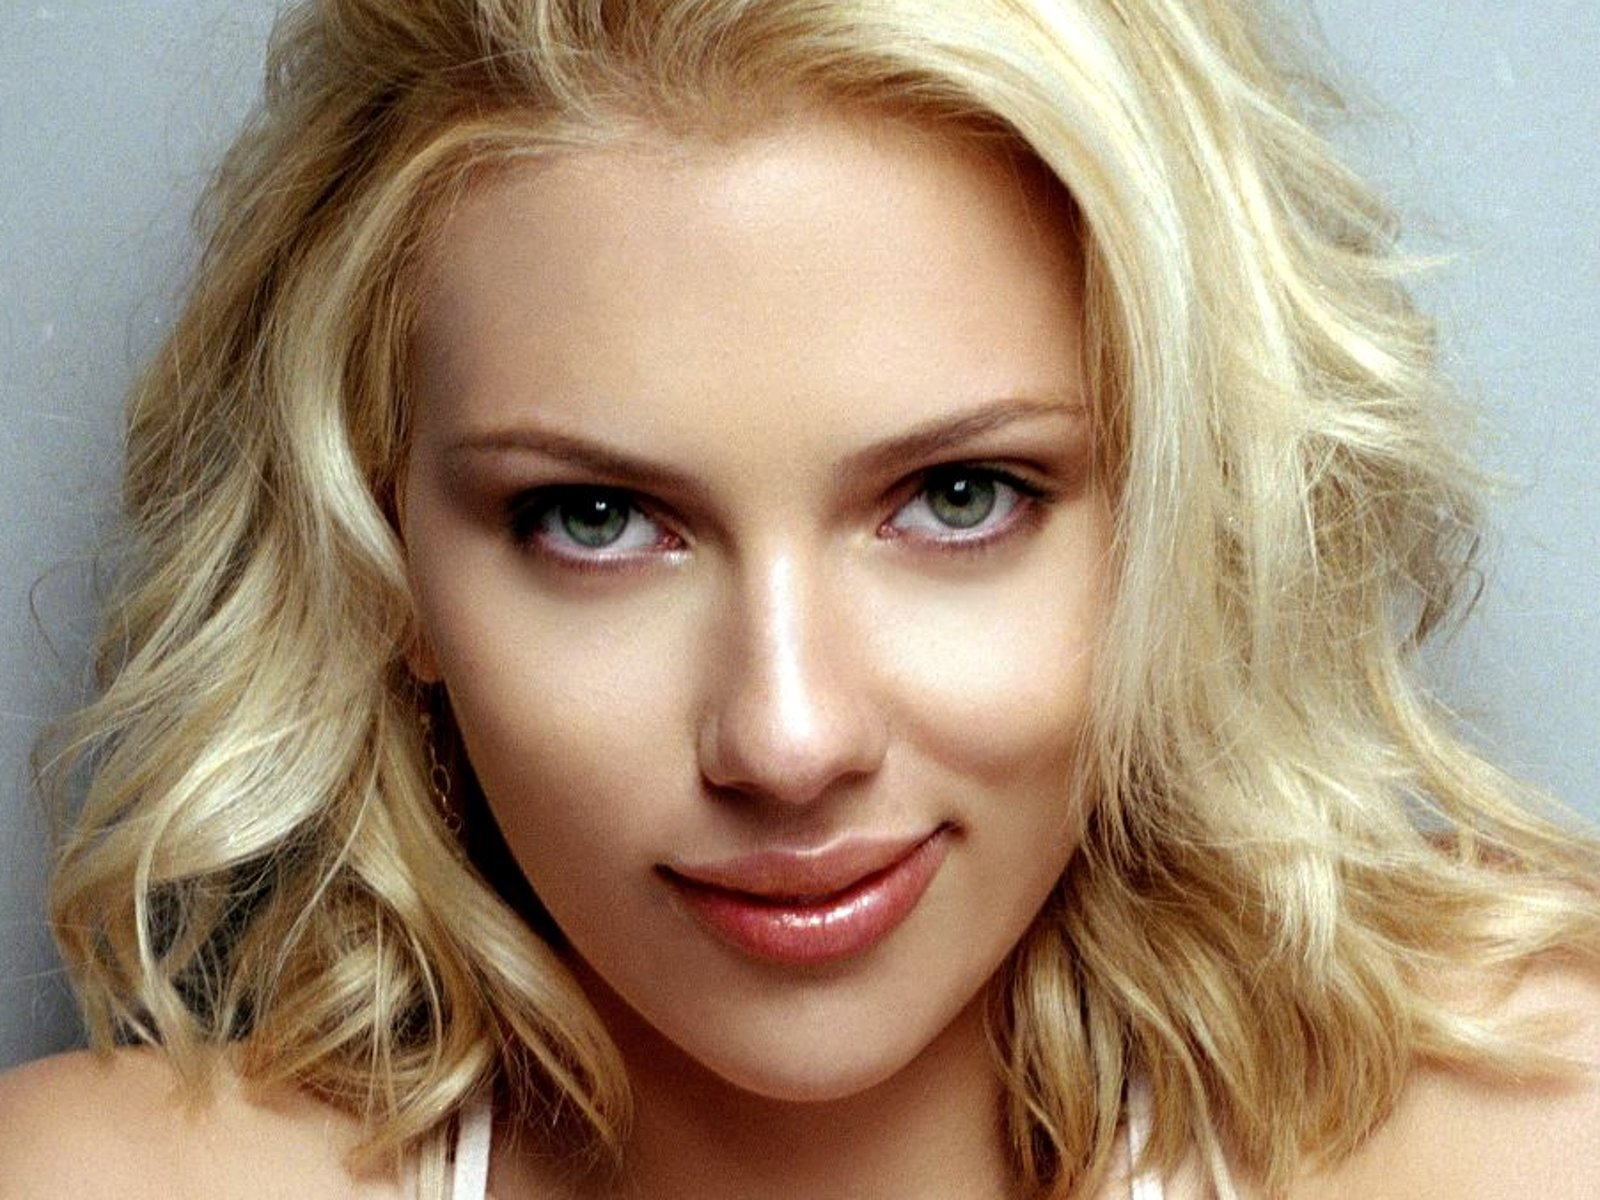 WARNING!! Check Out Scarlett Johansson Fully Nude in Her New Movie : KFRQ Q94.5